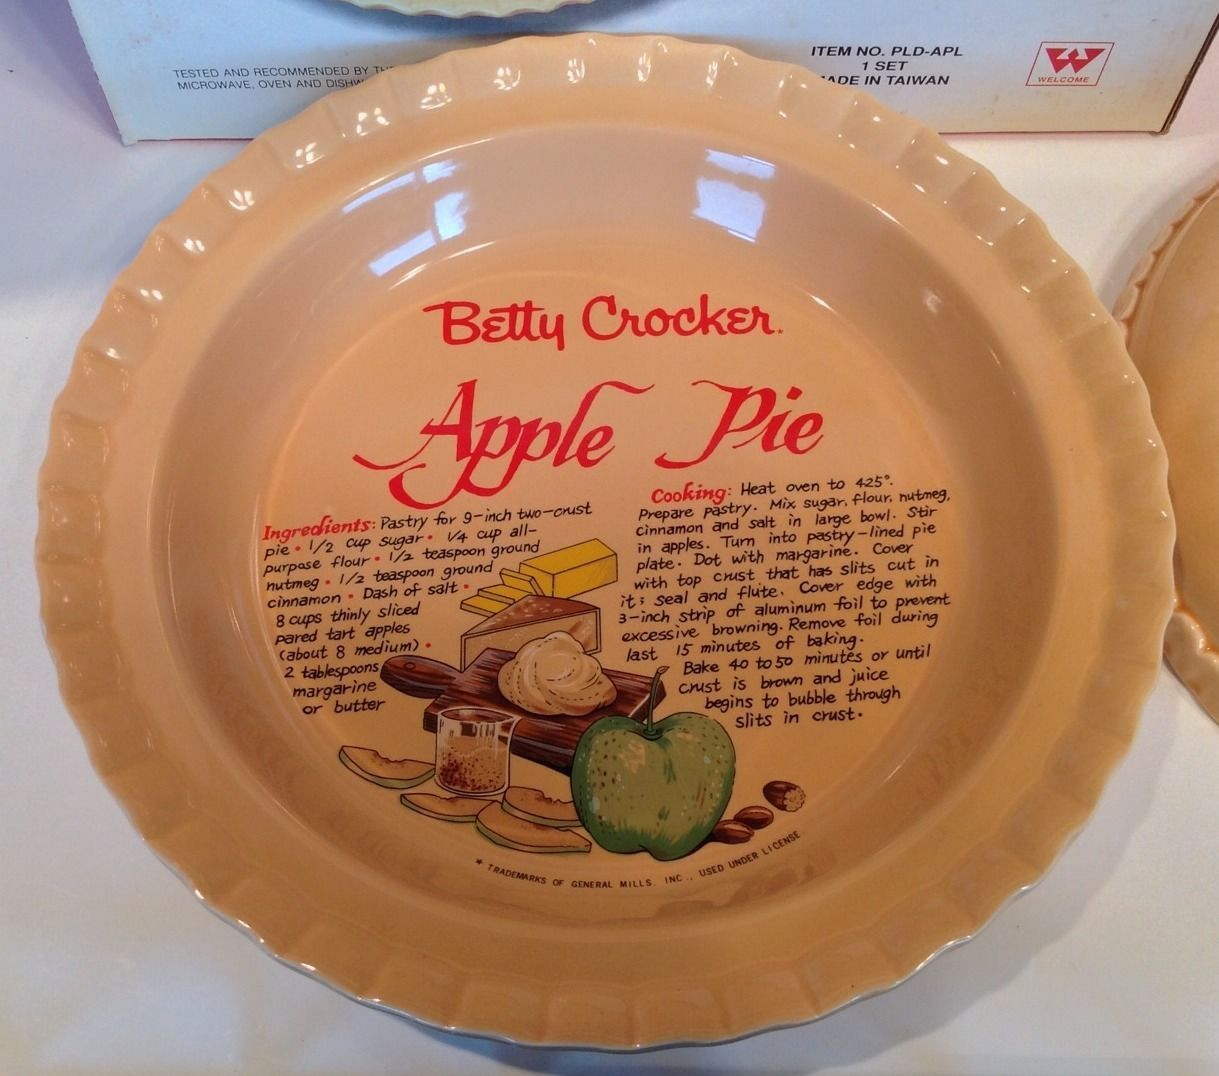 Vintage Betty Crocker Green Red Apple Ceramic Pie Plate Lid with Recipe | eBay & Vintage betty crocker green/red apple ceramic pie plate \u0026 lid with ...